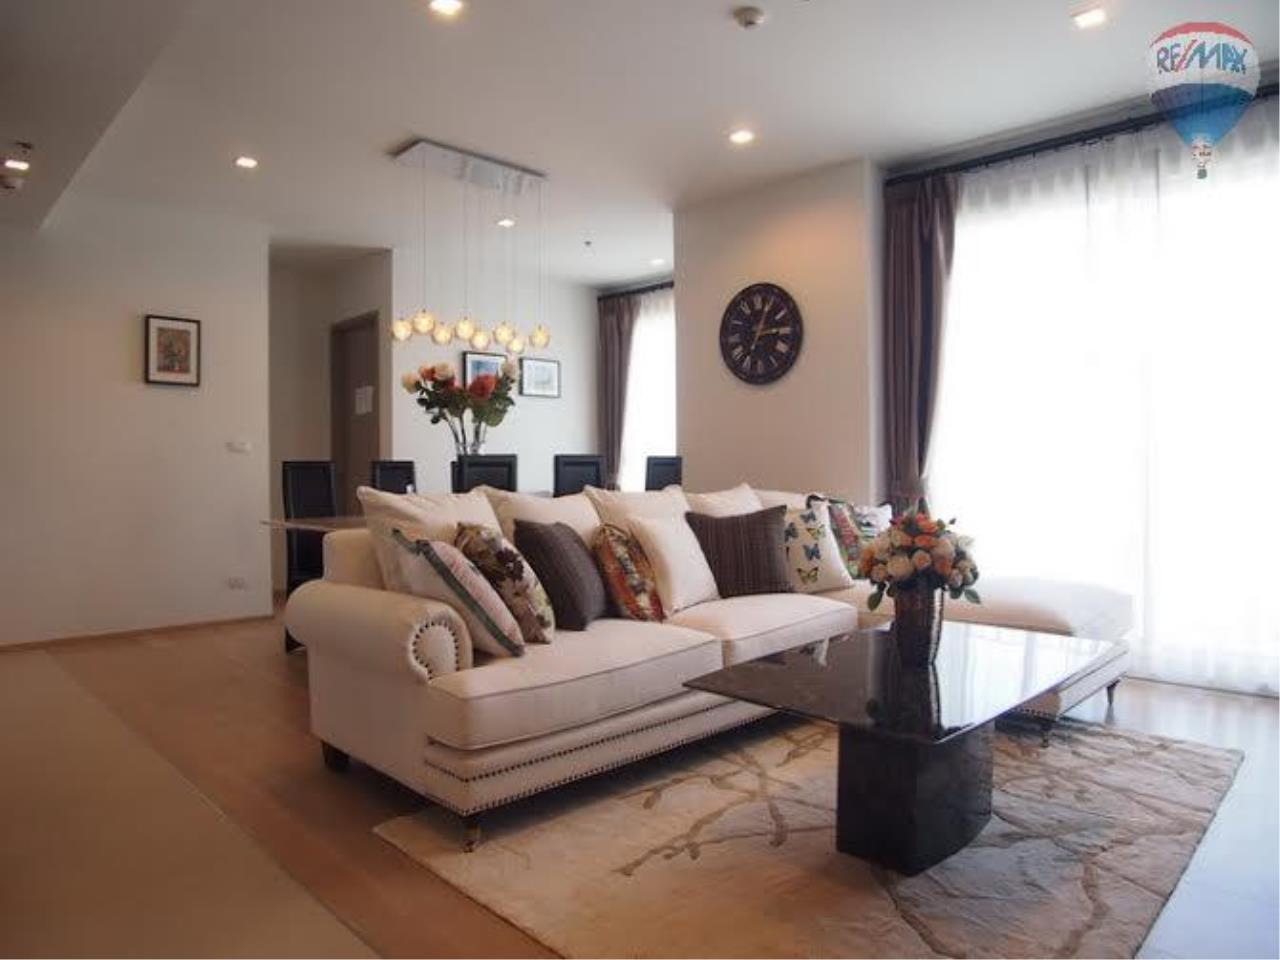 RE/MAX Properties Agency's 2 Bedrooms 100 Sq.M. in HQ by Sansiri for sale 16